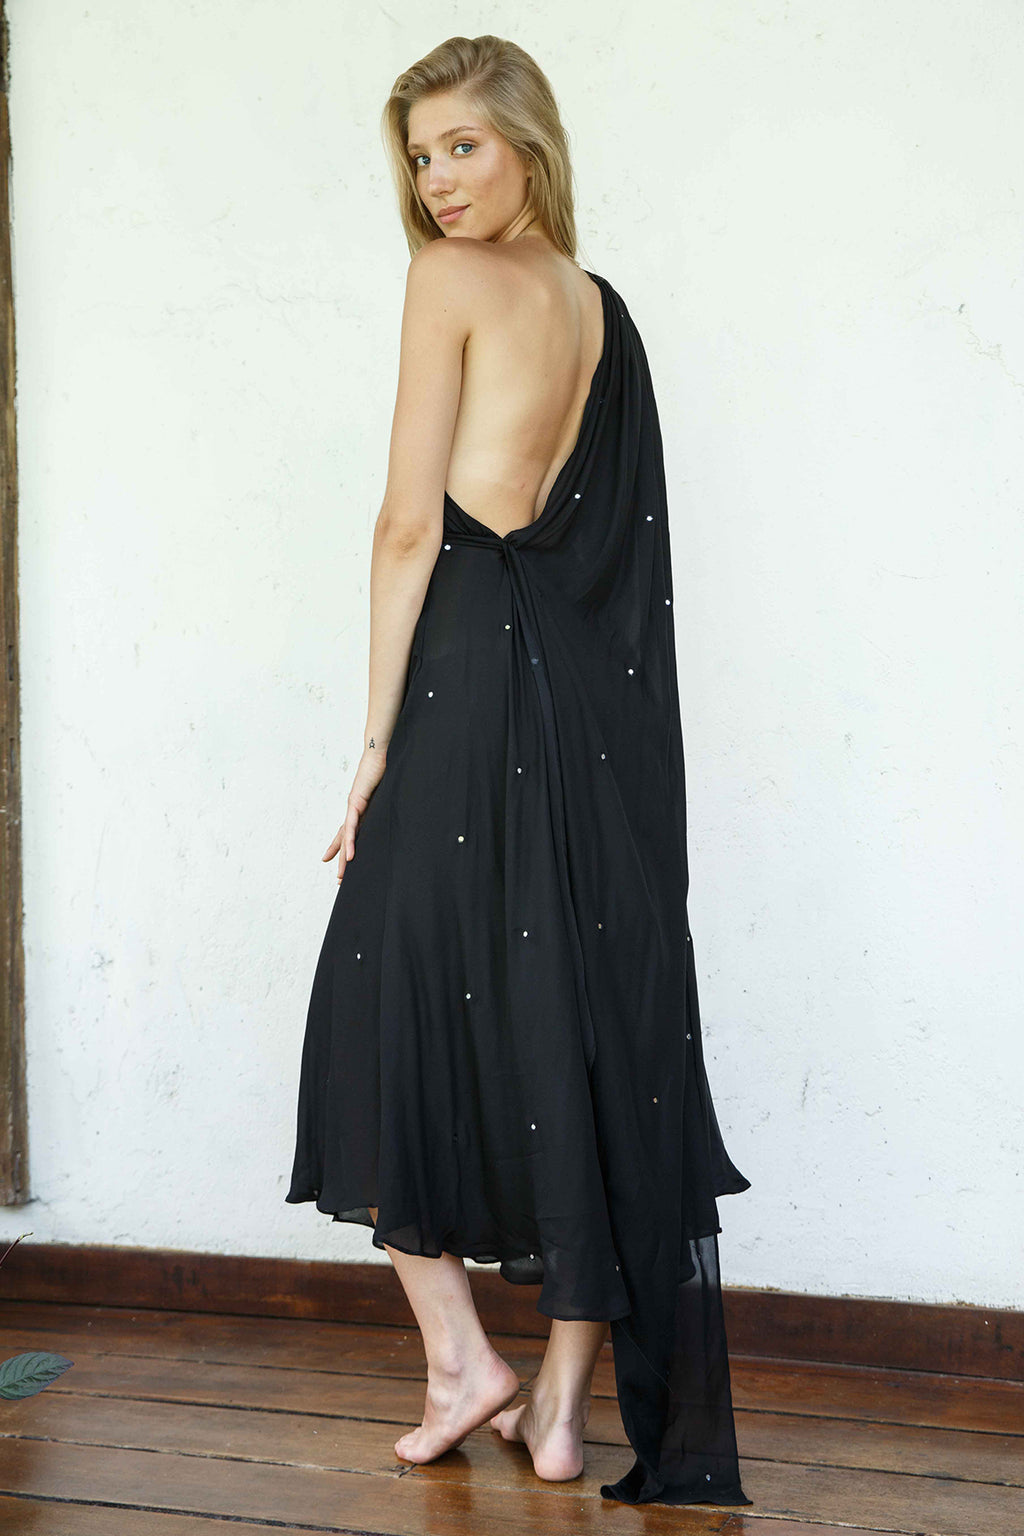 Backless Saree Dress